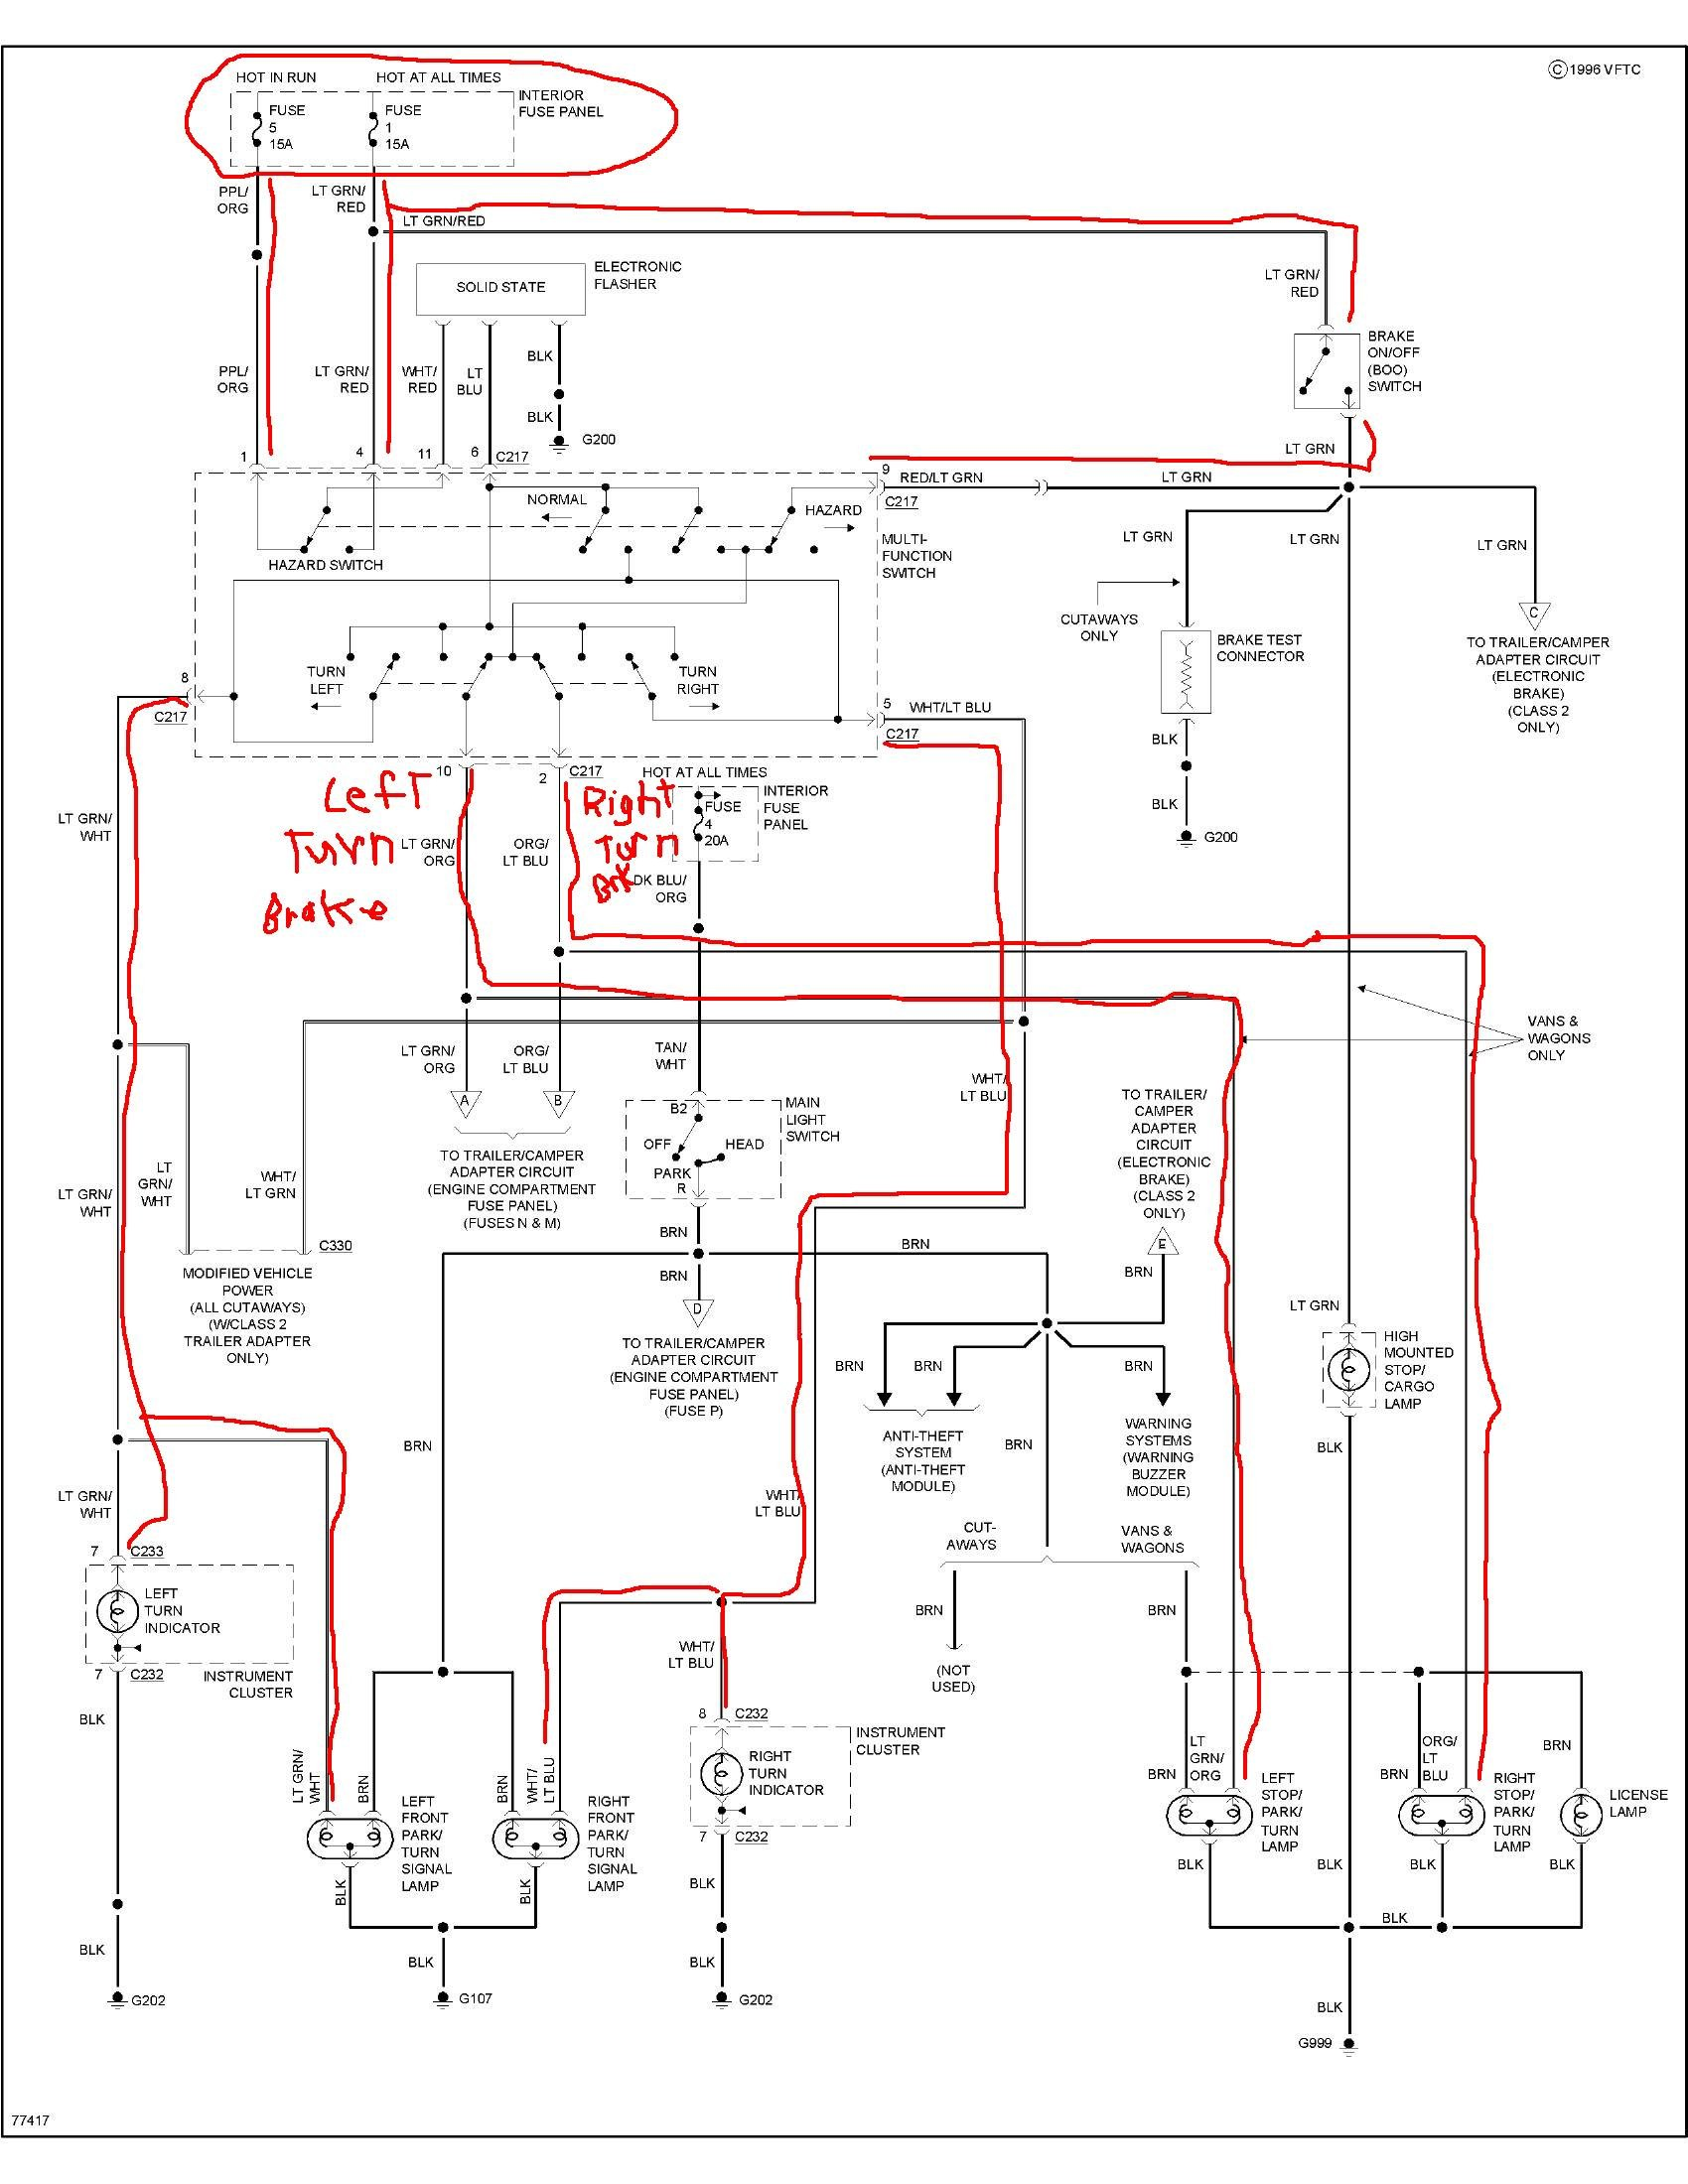 ☑ 1990 ford e350 wiring diagrams hd quality ☑ cluster-diagrams .twirlinglucca.it  twirlinglucca.it